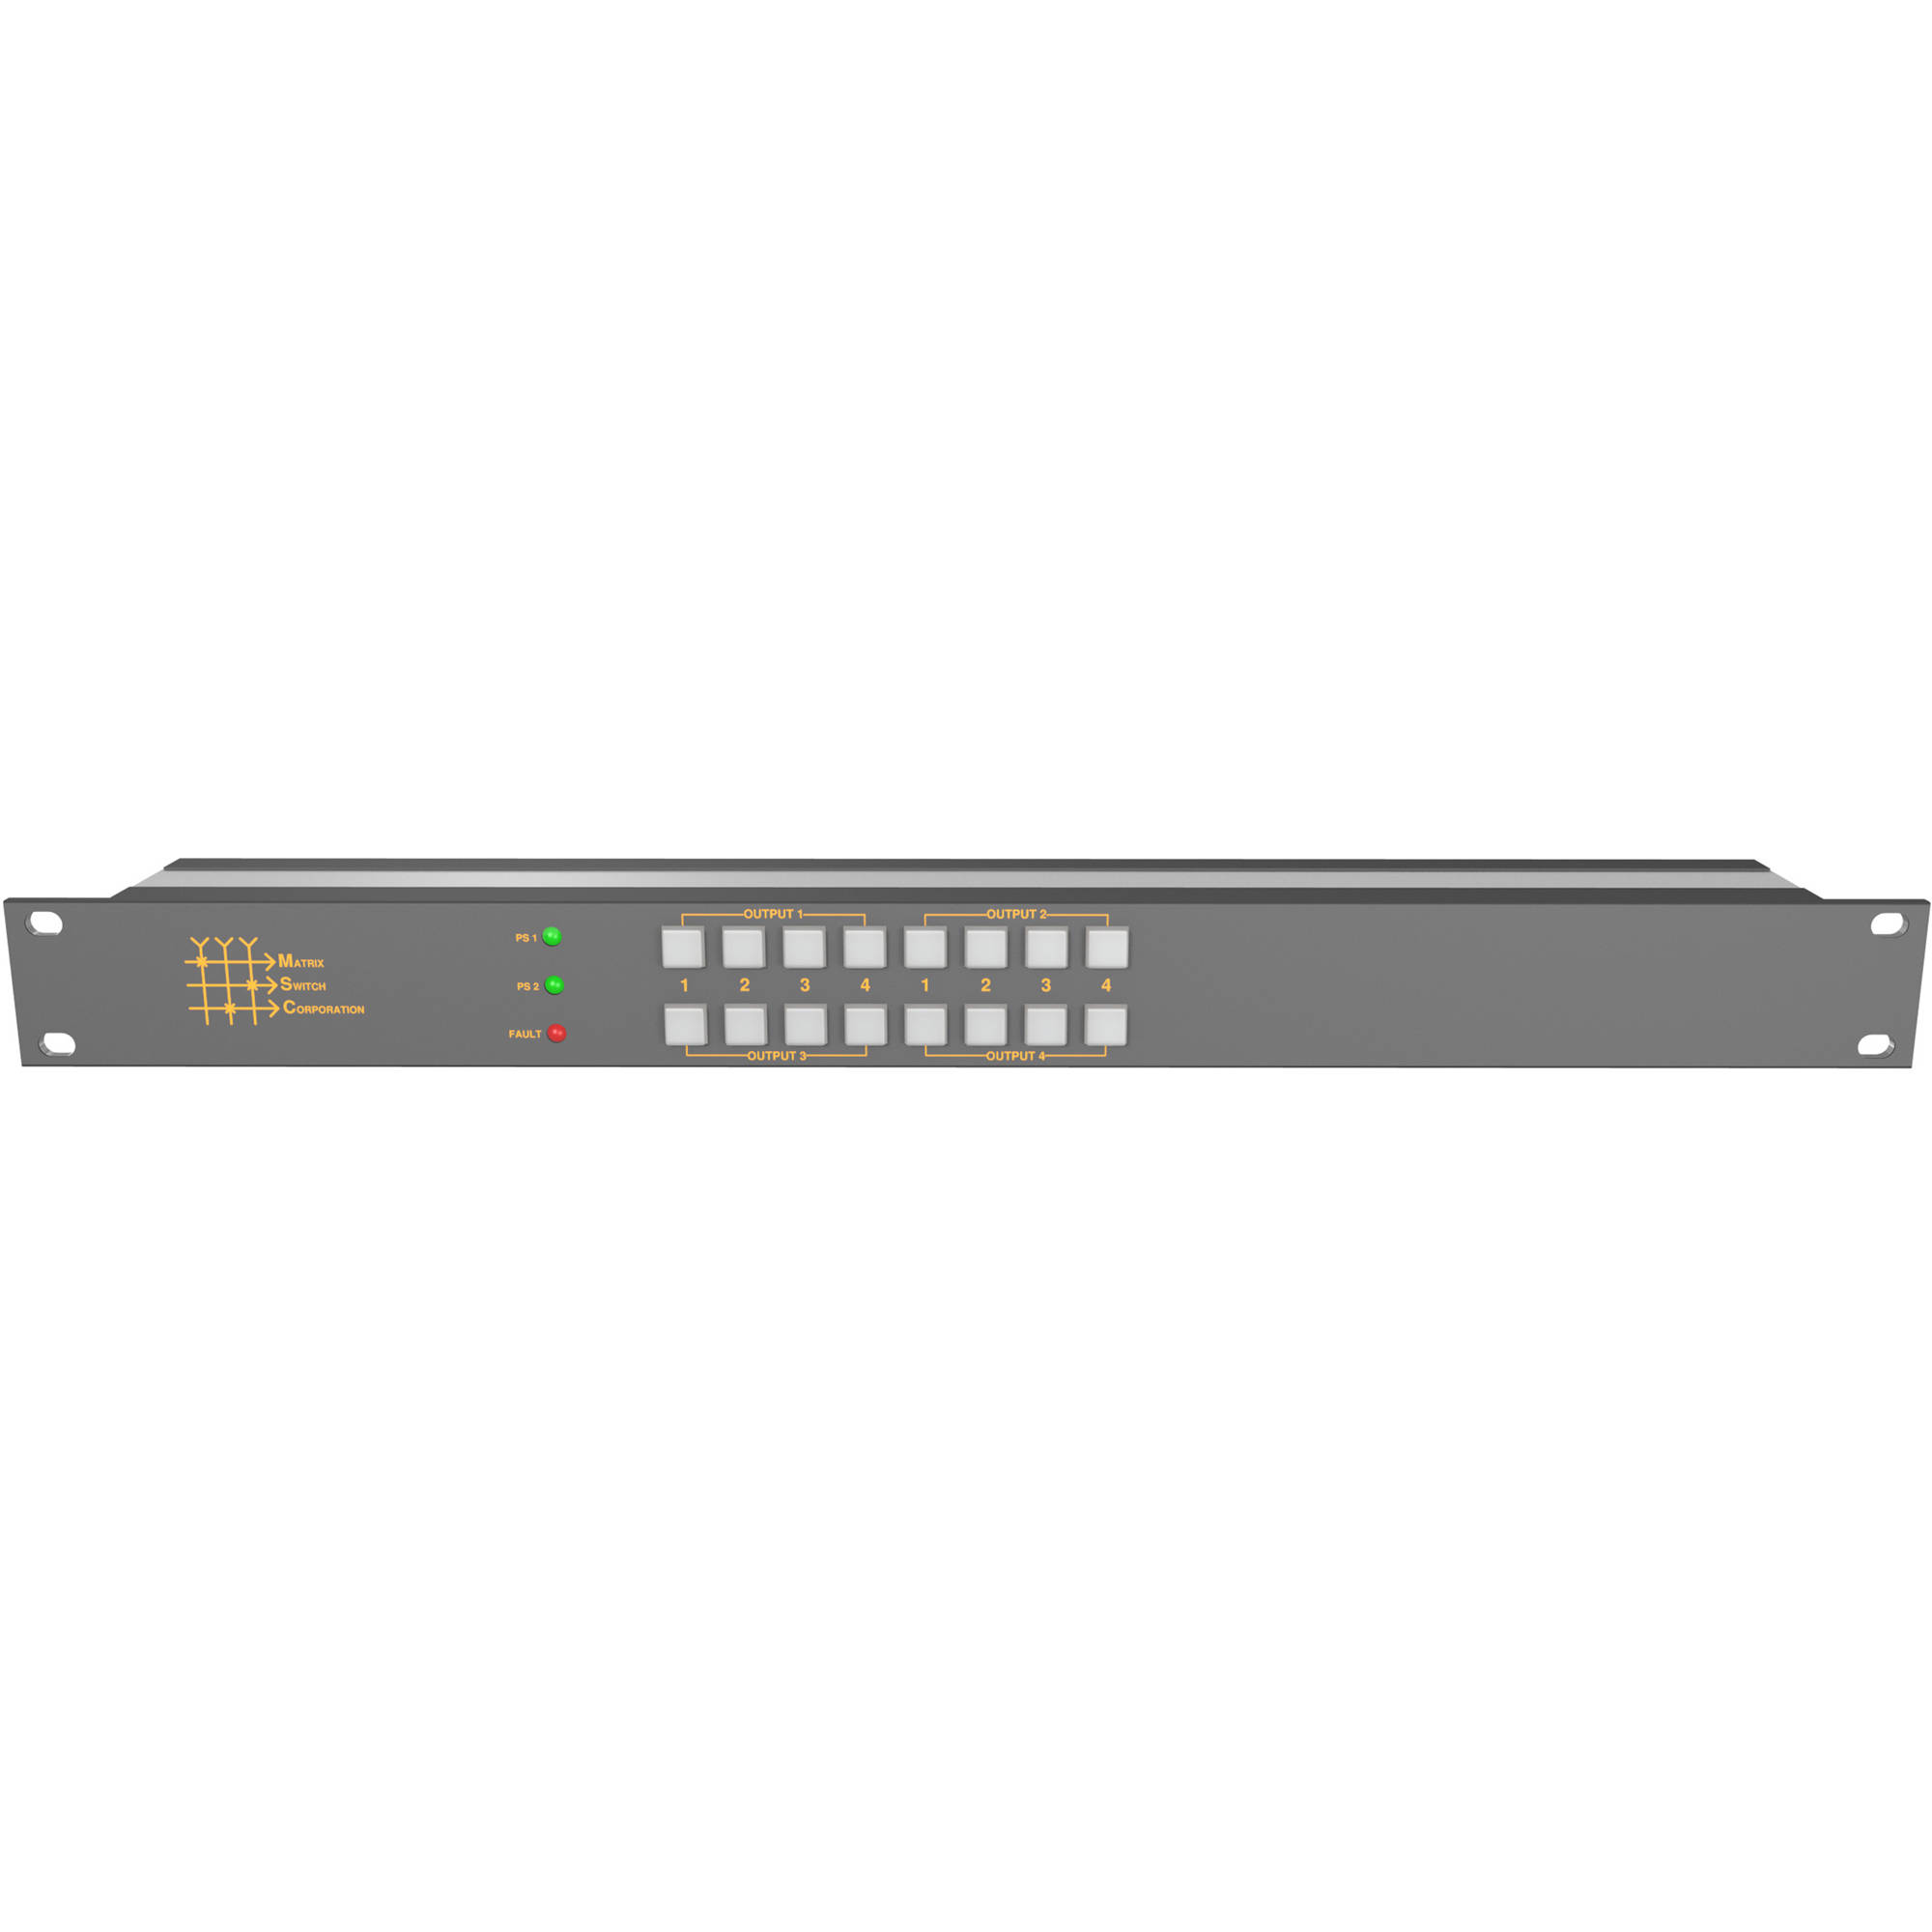 Matrix Switch 12 x 1 3G-SDI Video Routing Switcher with Button Panel